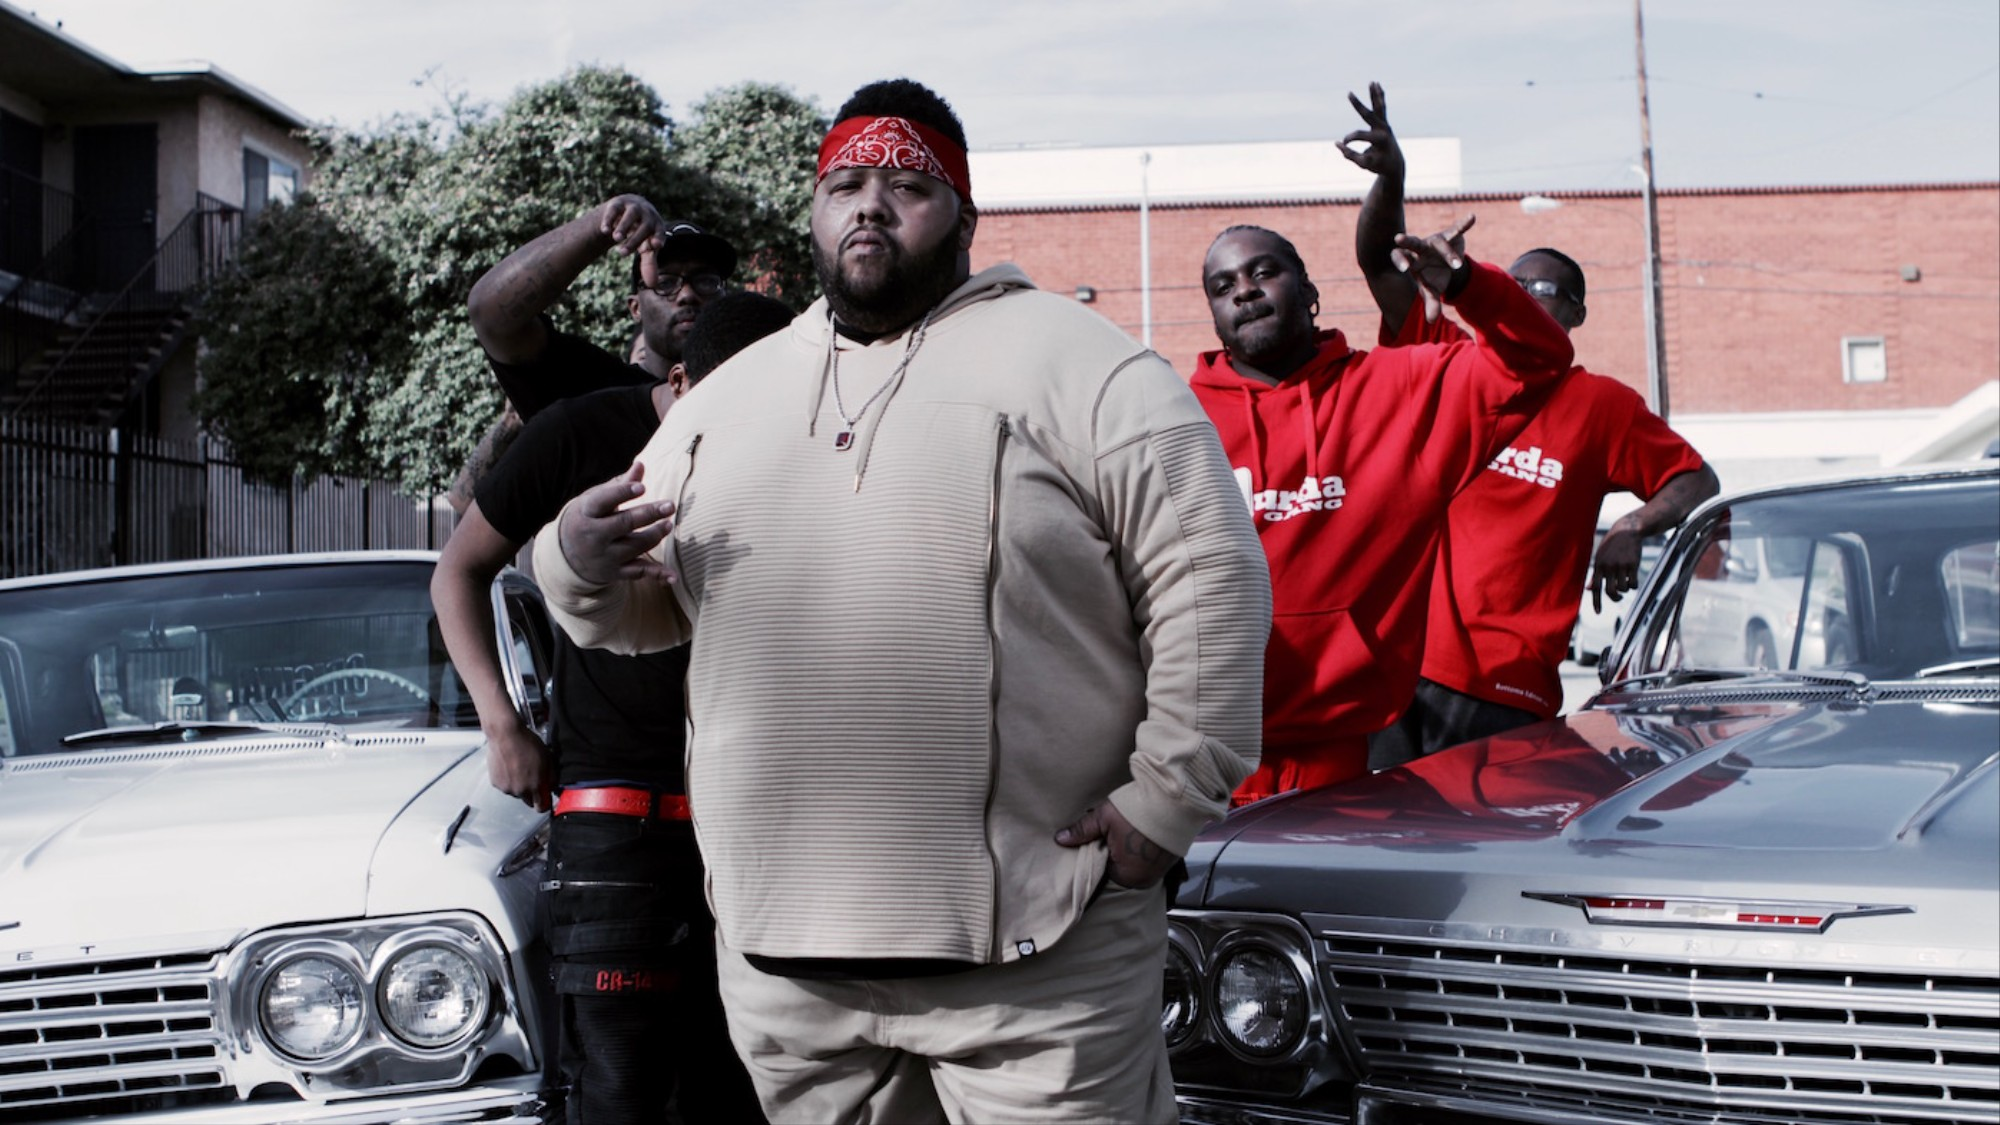 LA's OGs Have Some Words for Celebrities Saying They're Bloods - VICE